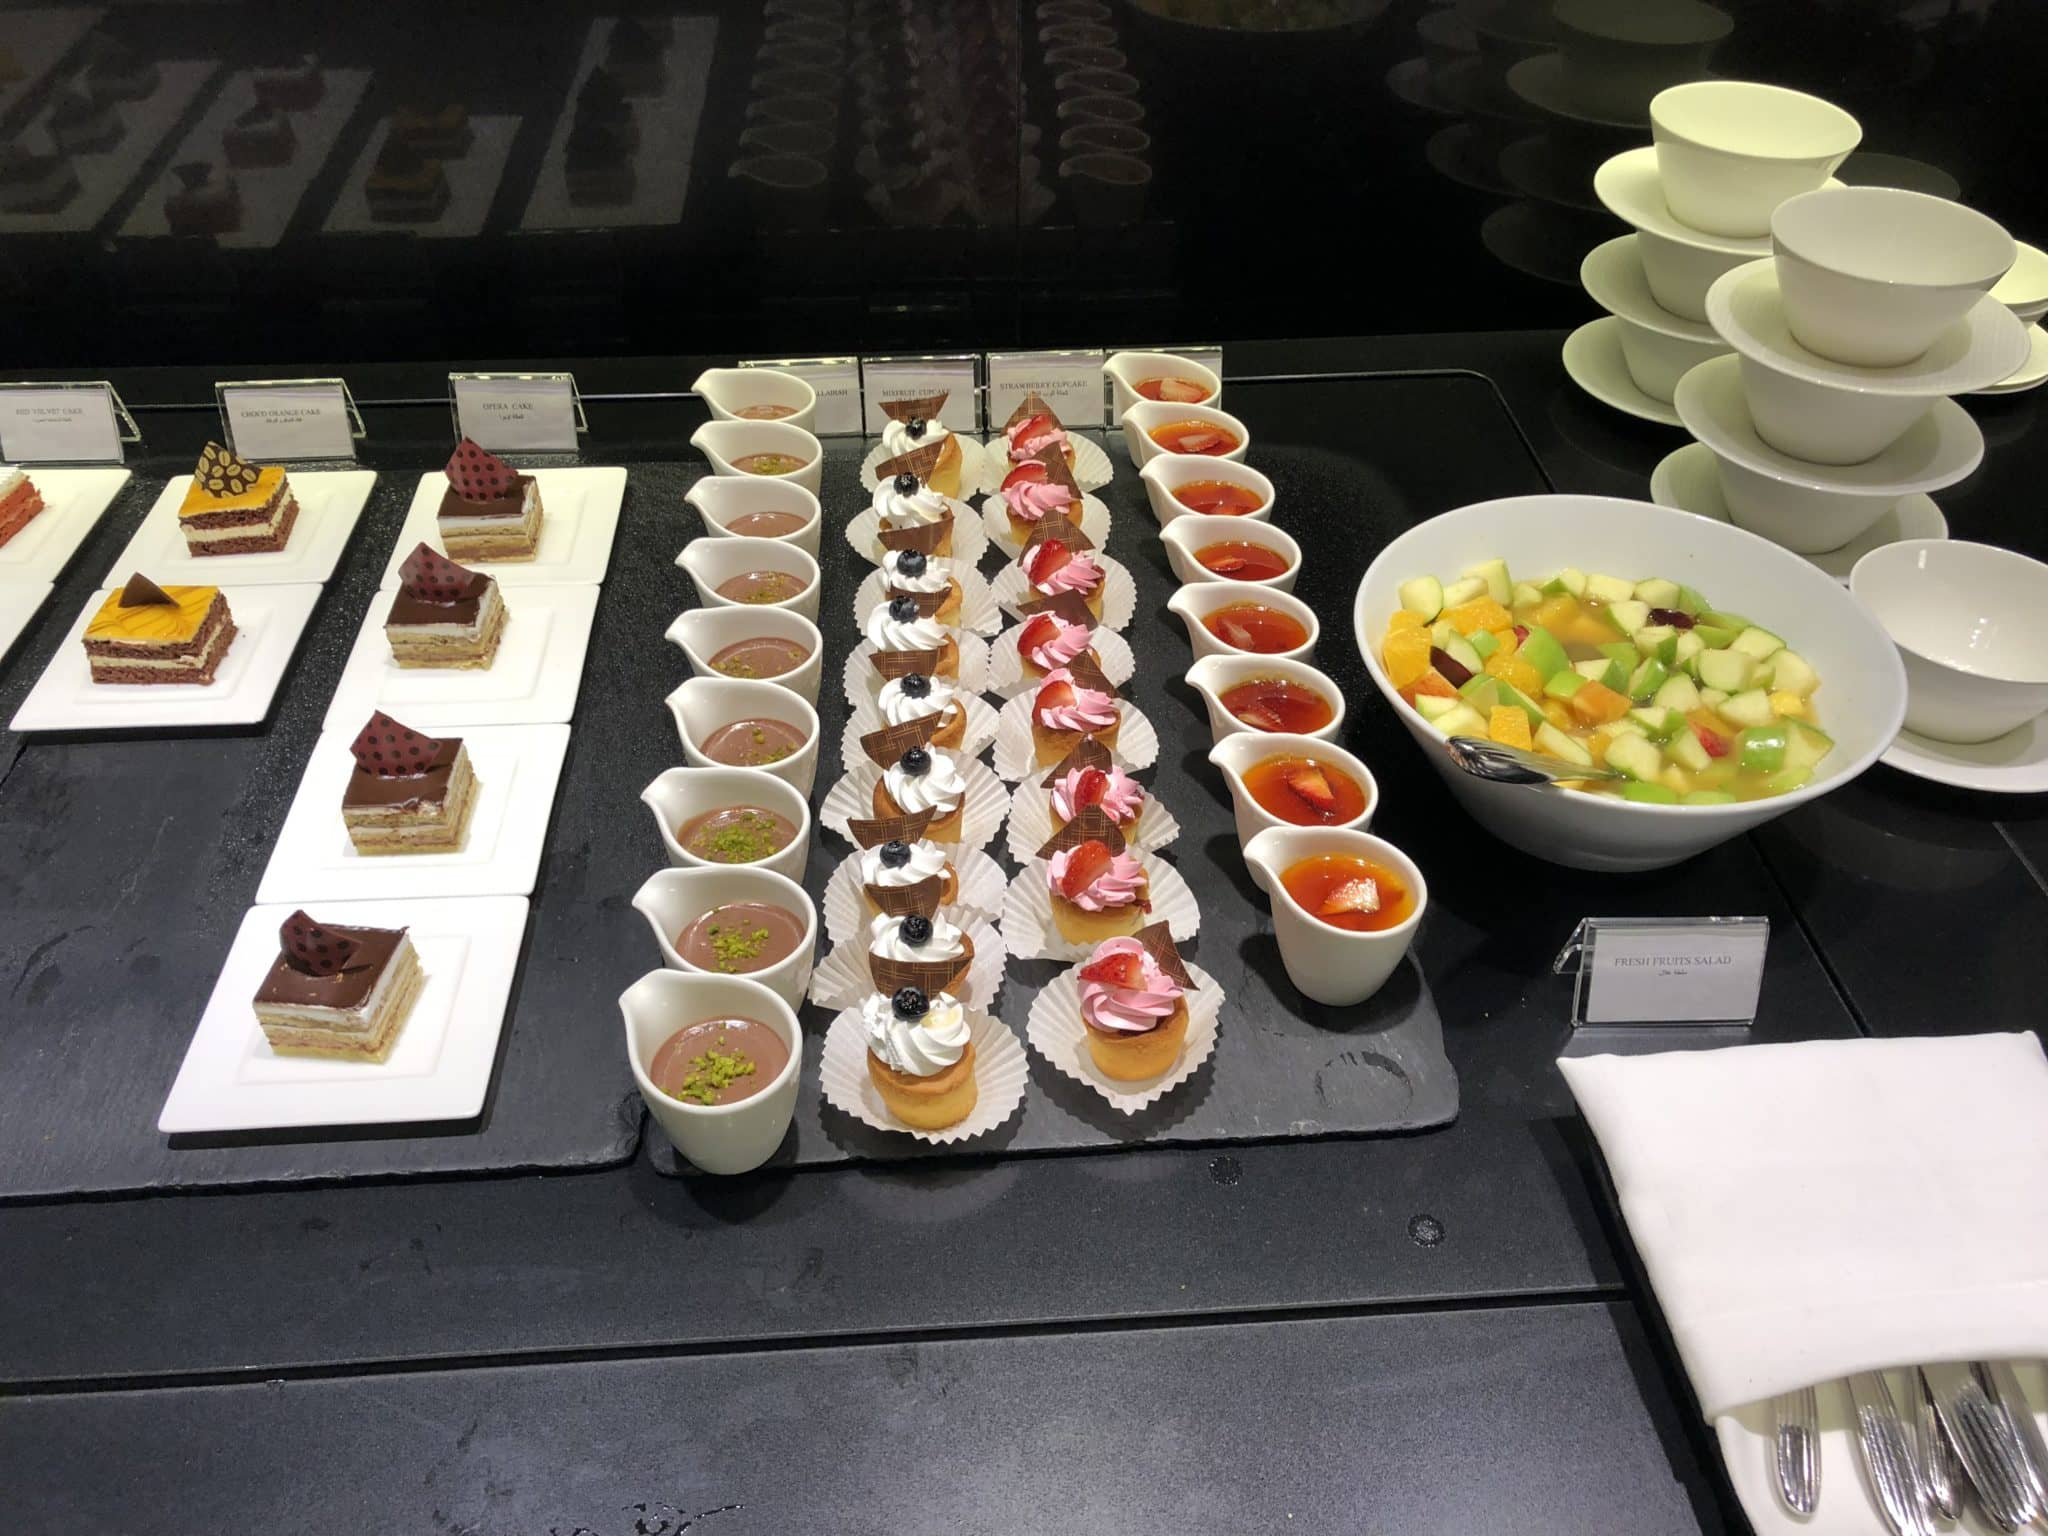 Qatar Airways Al Mourjan Business Class Lounge Sweets